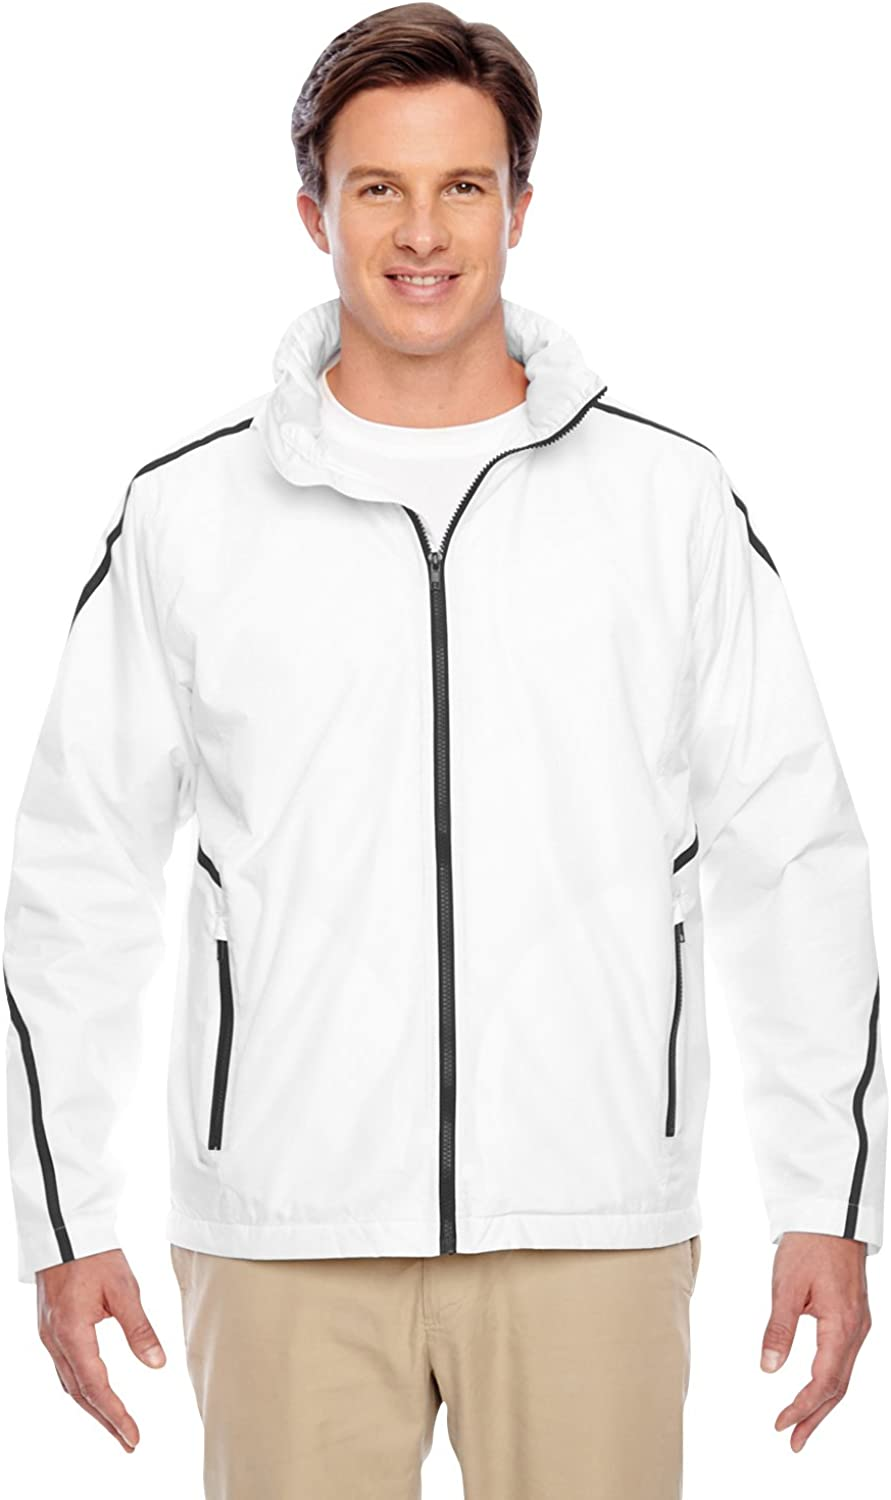 TEAM 365 Conquest Jacket with Fleece Lining (TT72) White, XS